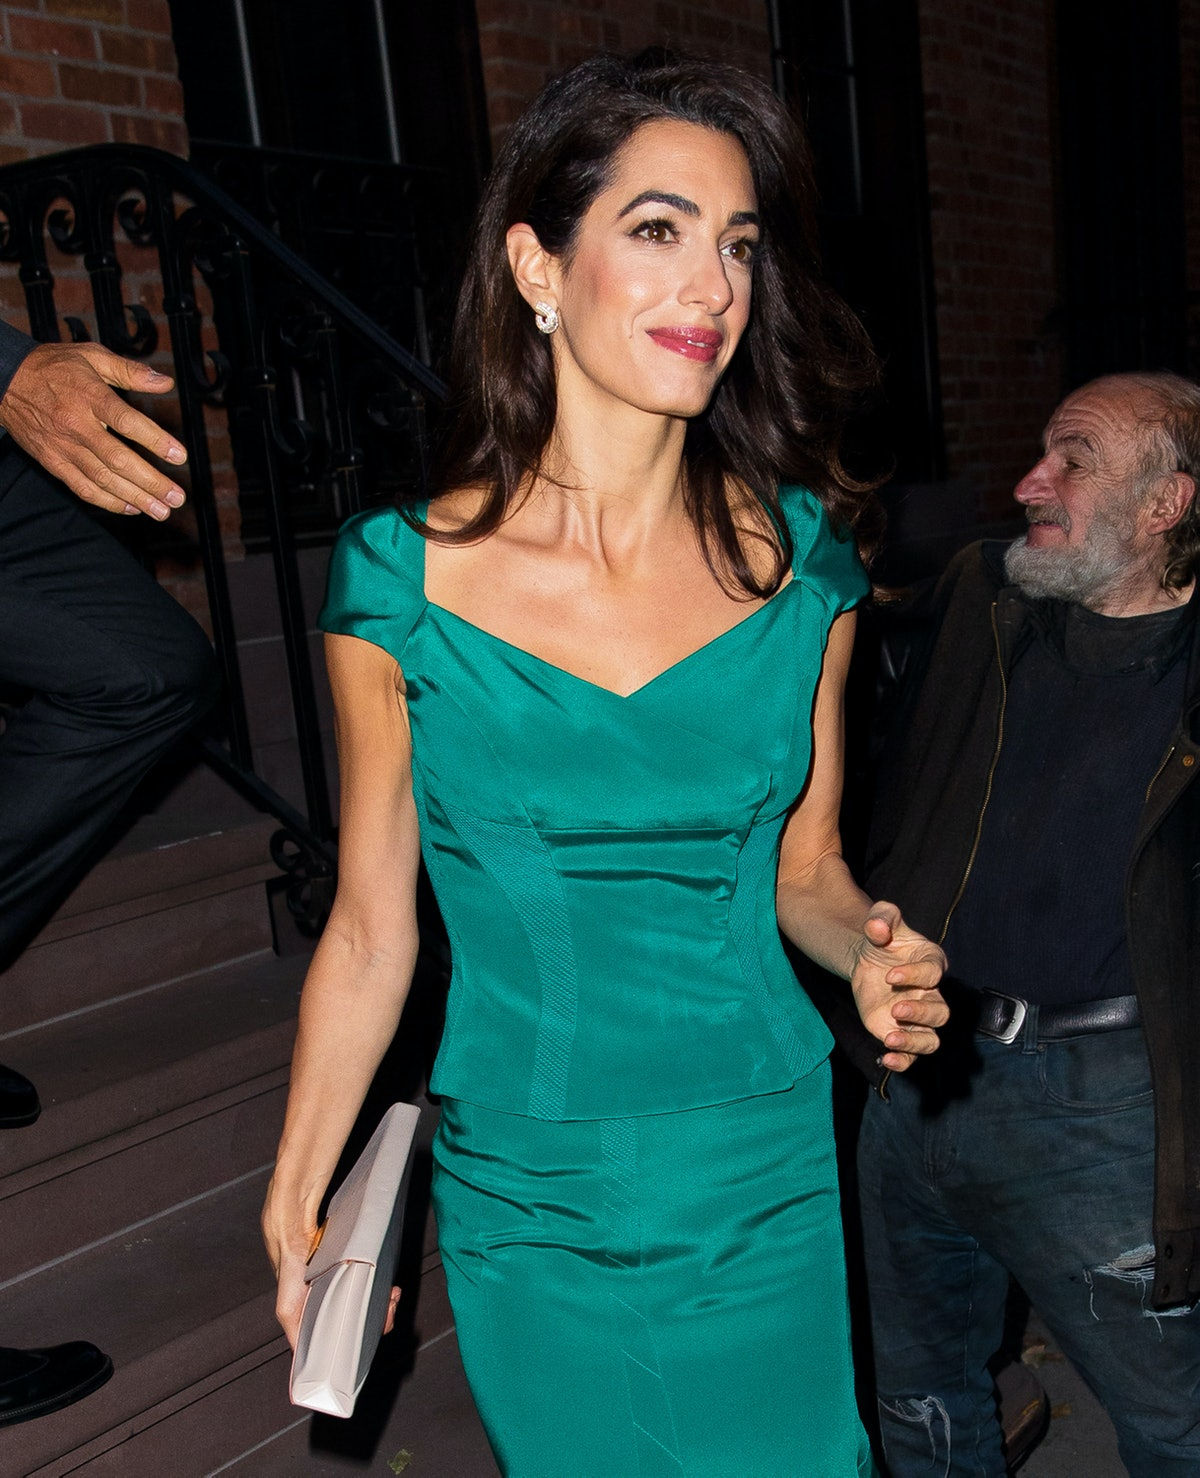 NEW YORK, NEW YORK - OCTOBER 01: Amal Clooney seen on October 01, 2019 in New York City. (Photo by J...